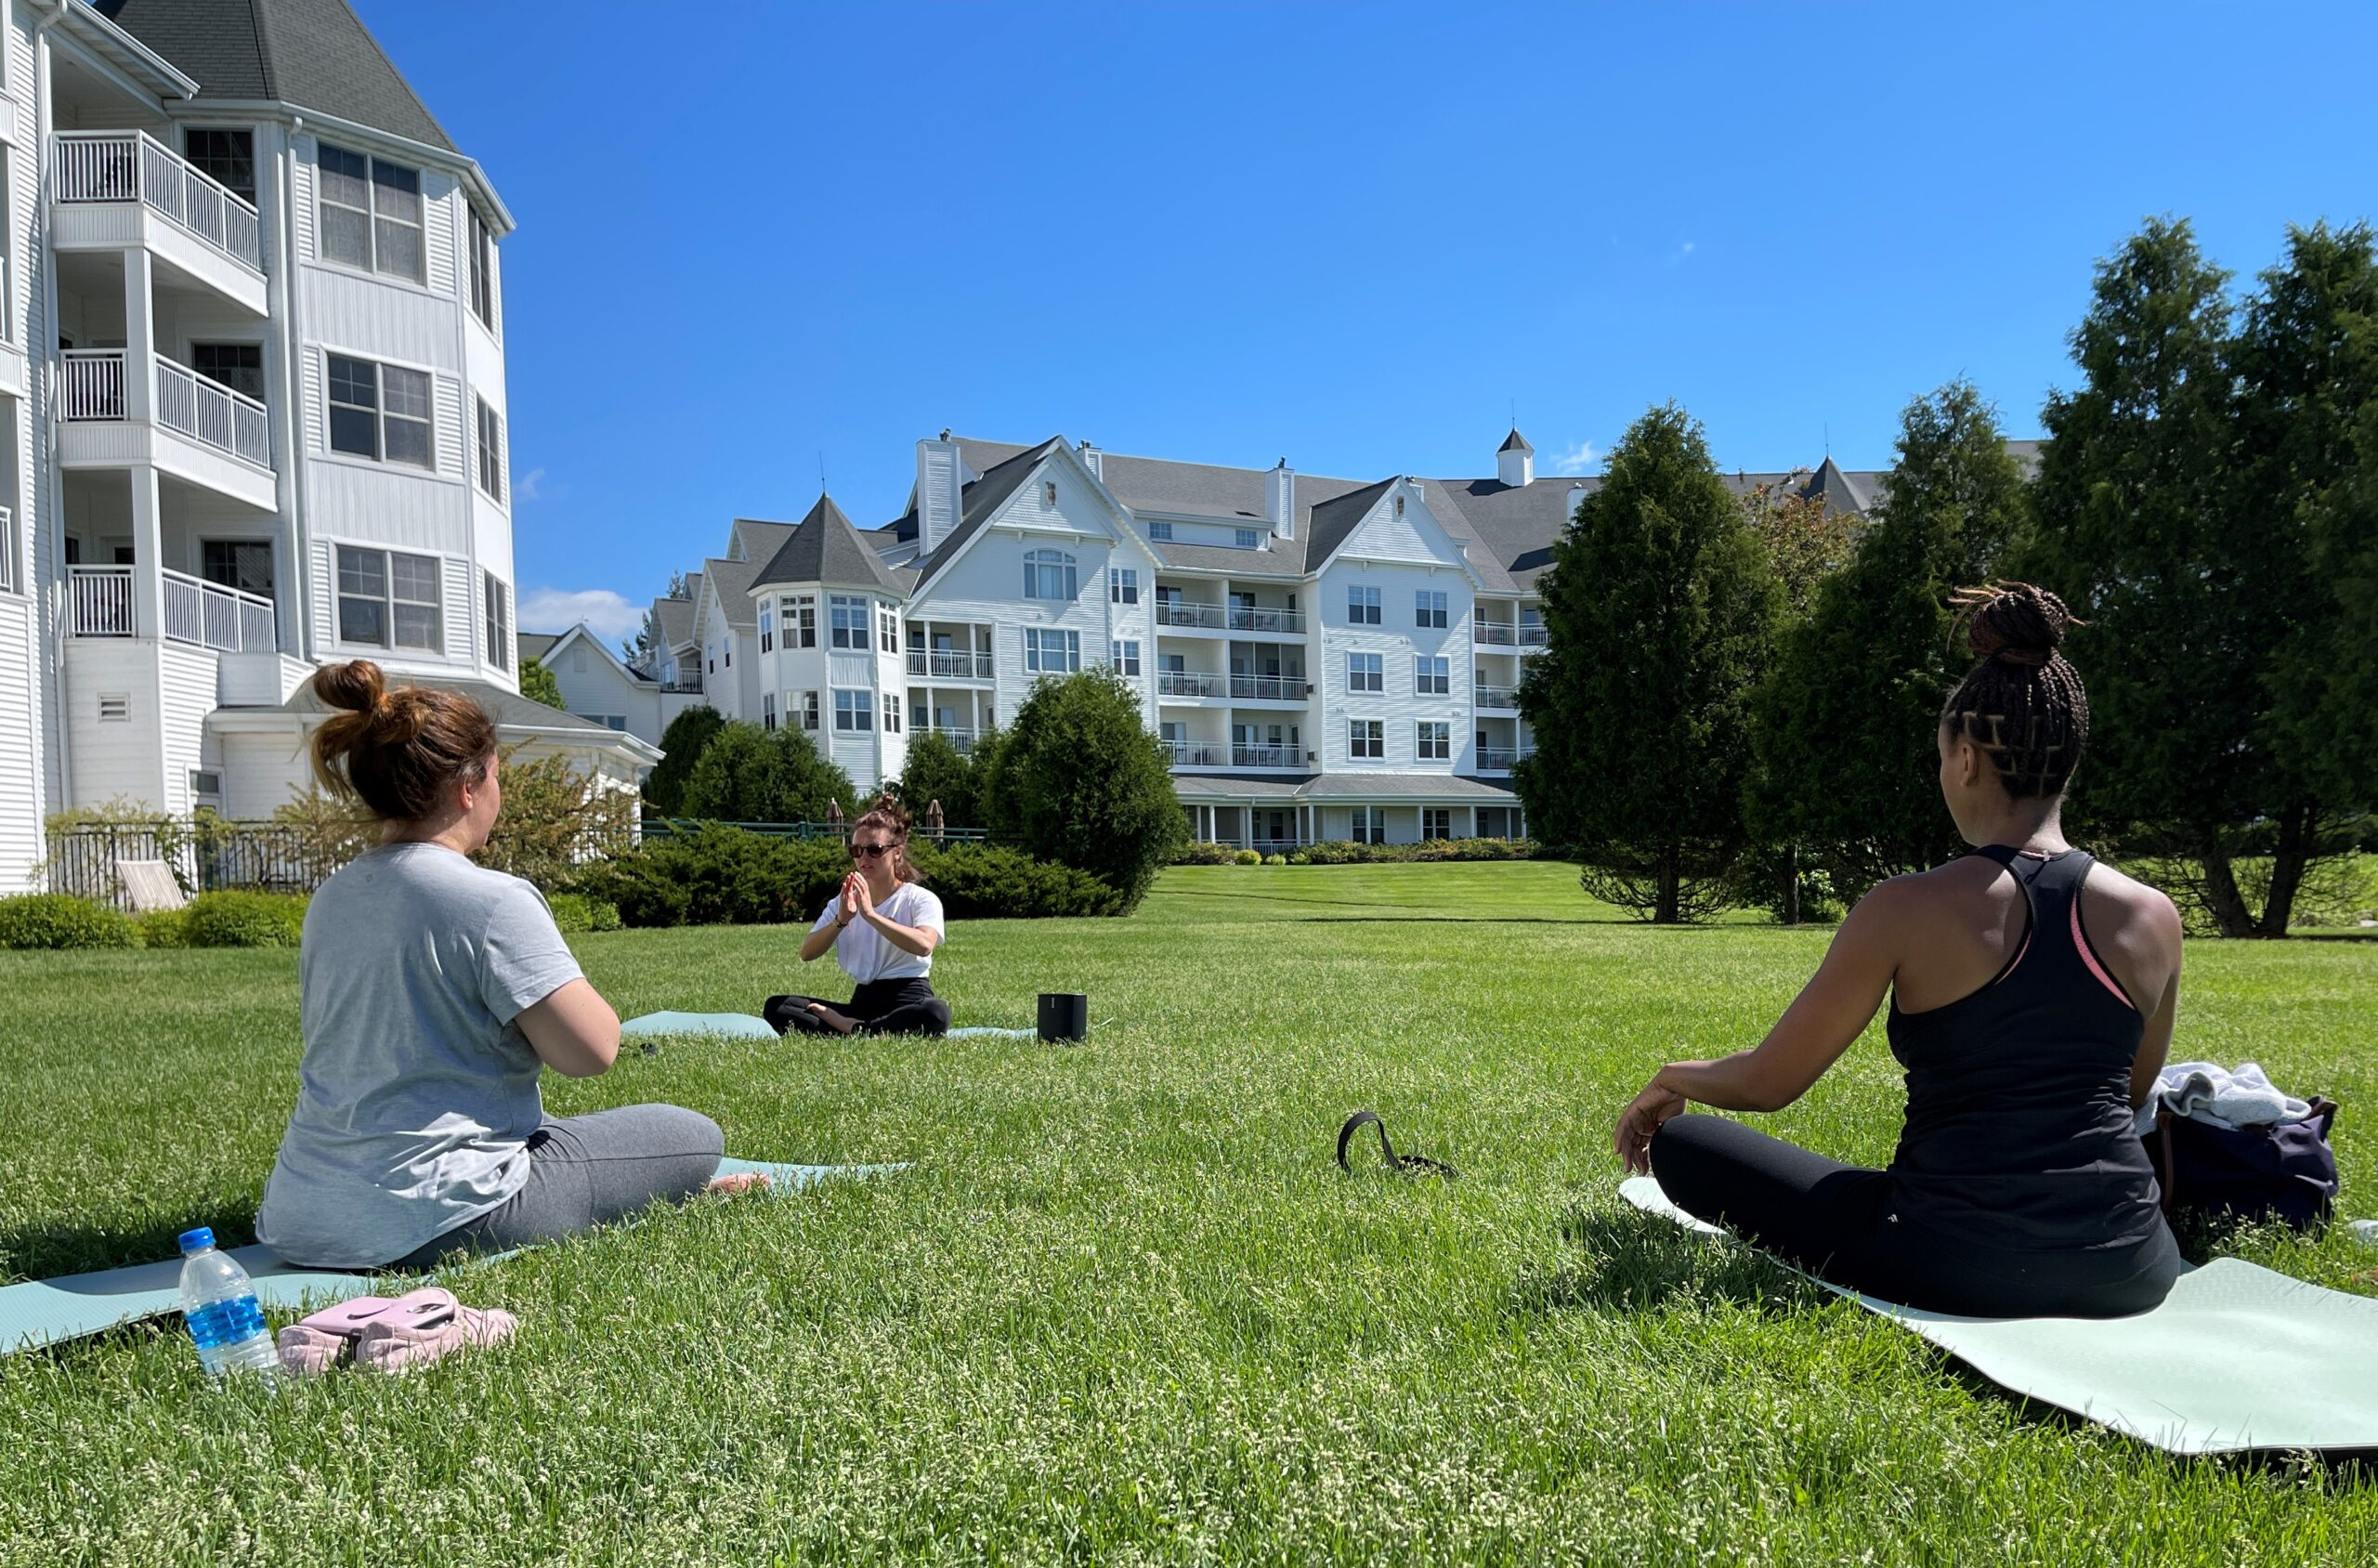 Yoga on the lawn at the Osthoff Resort in Elkhart Lake, WI.